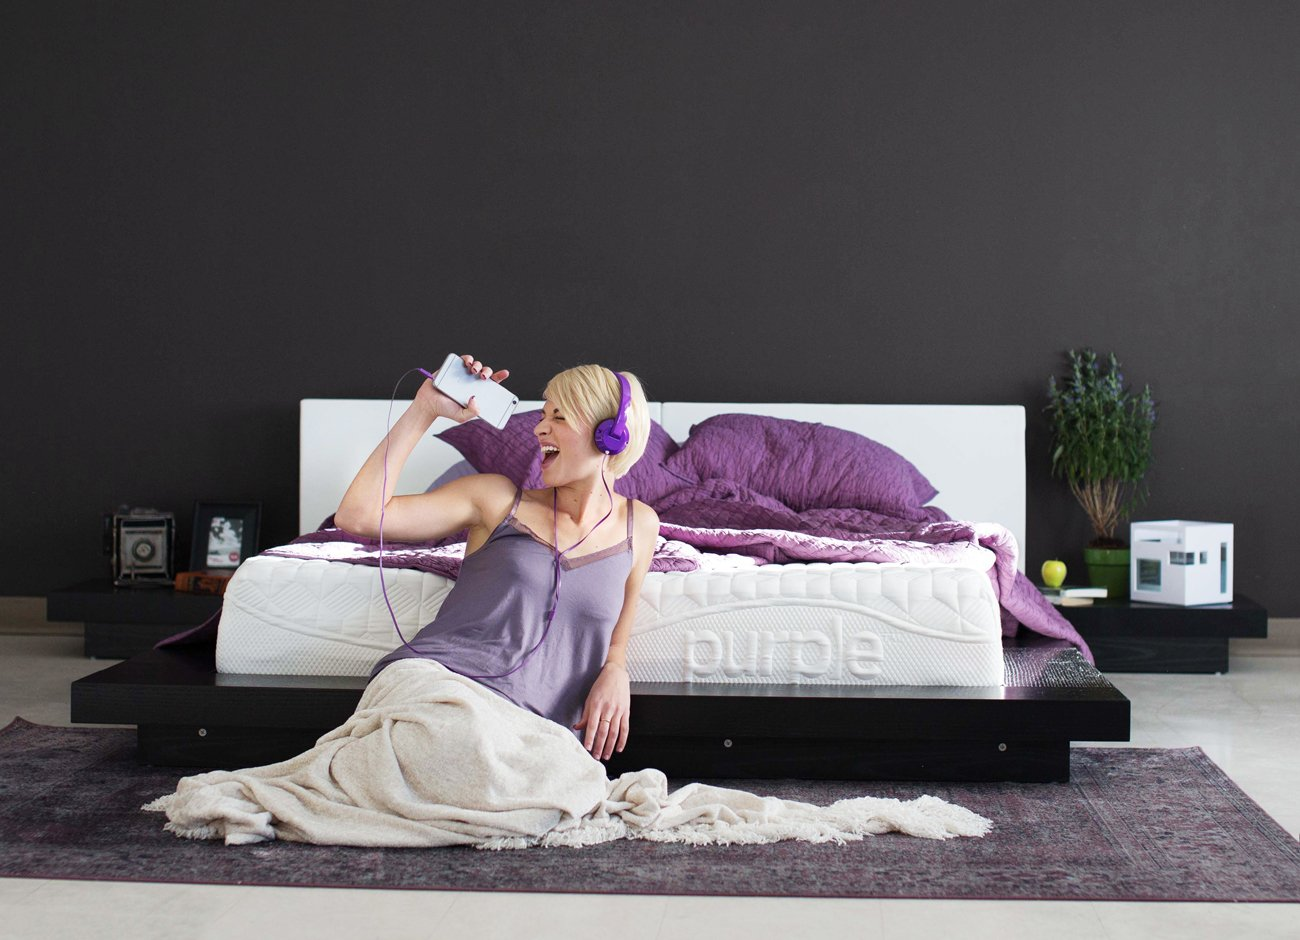 Purple Mattress Review And Buying Guide by www.snoremagazine.com